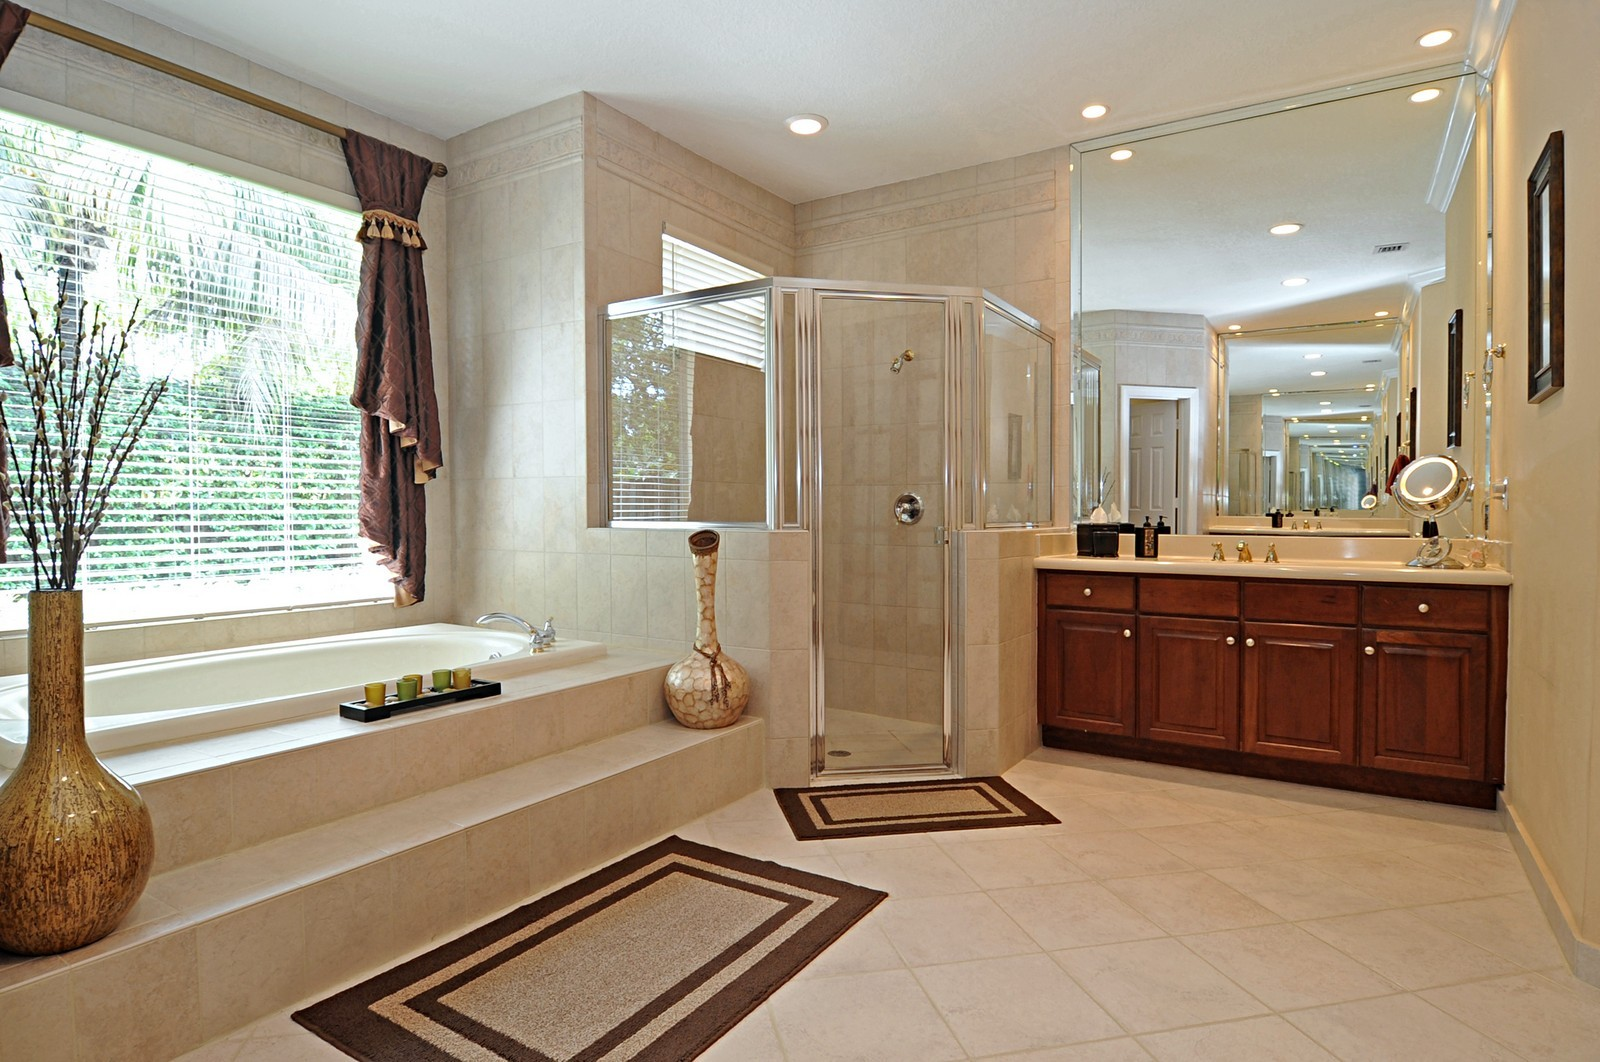 Real Estate Photography - 9564 SW 123rd, Miami, FL, 33176 - Master Bathroom